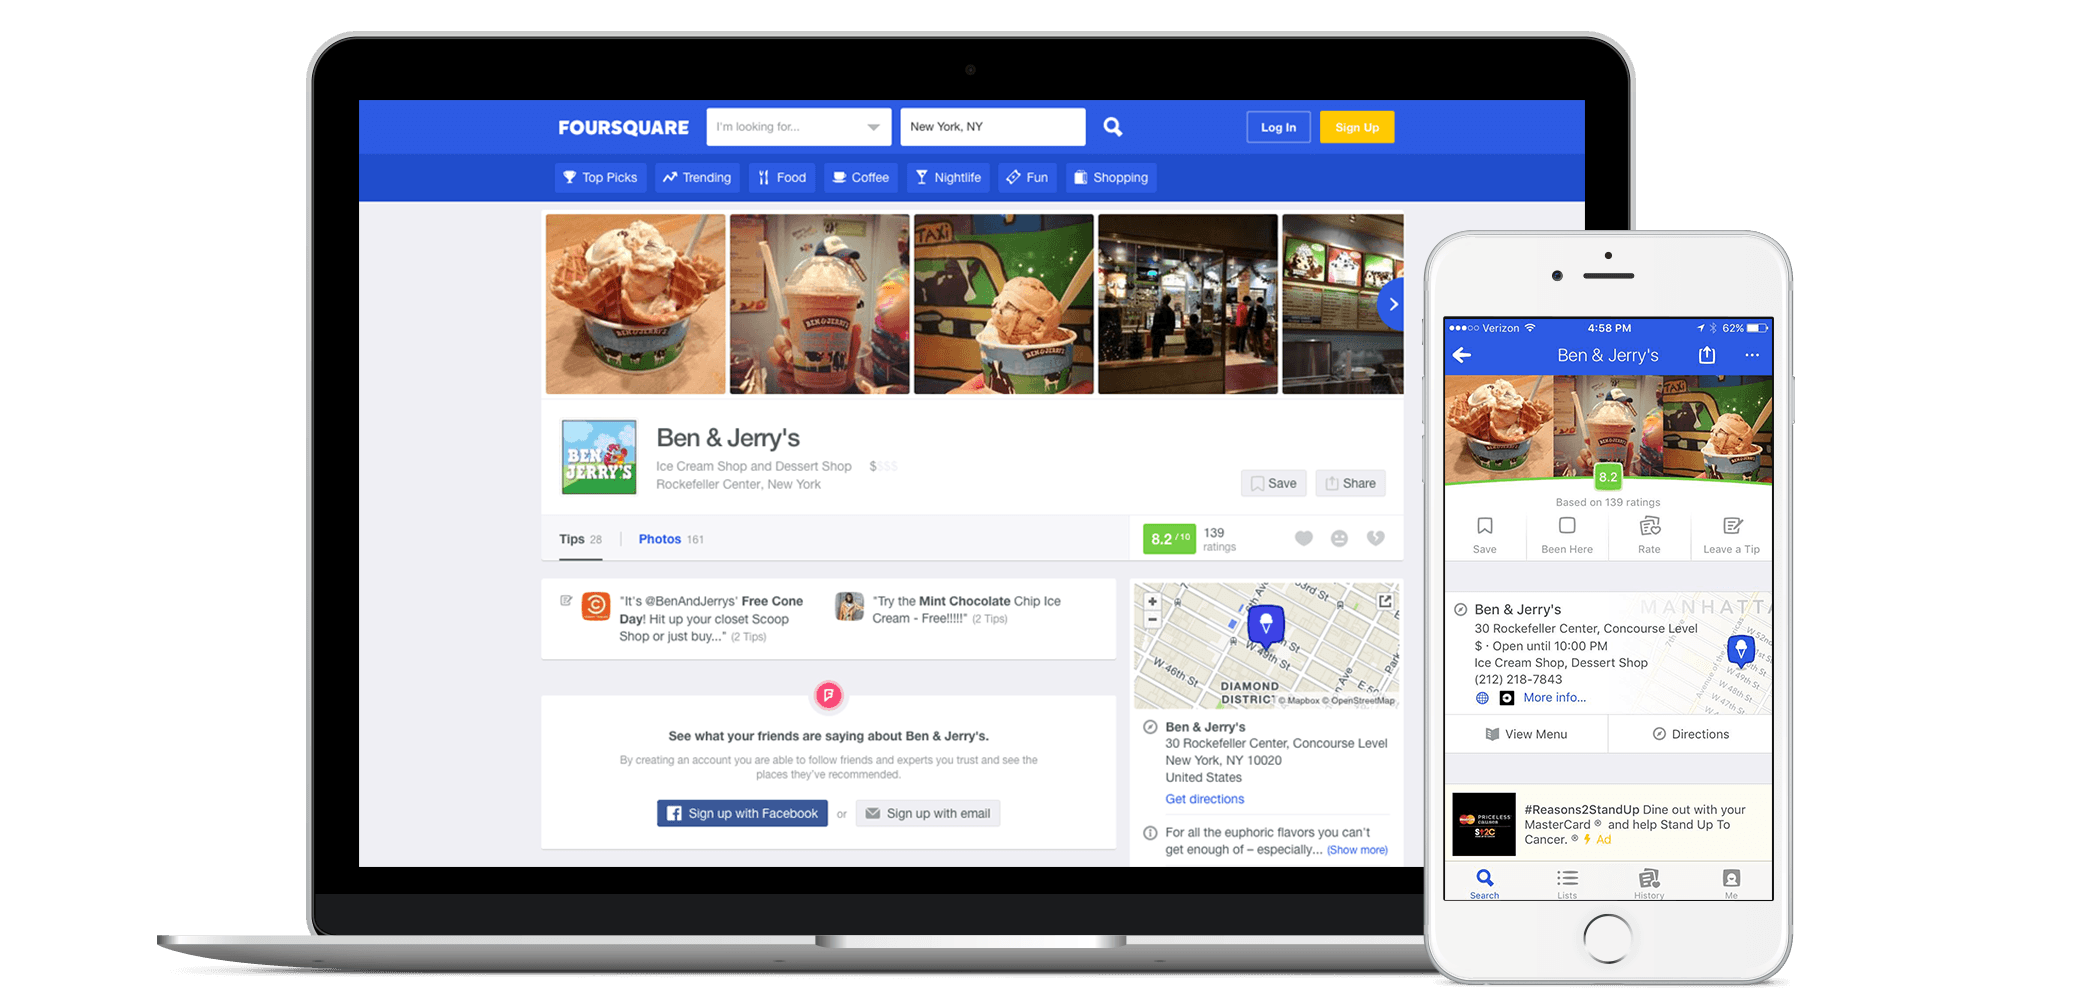 products-listings-Foursquare-hero